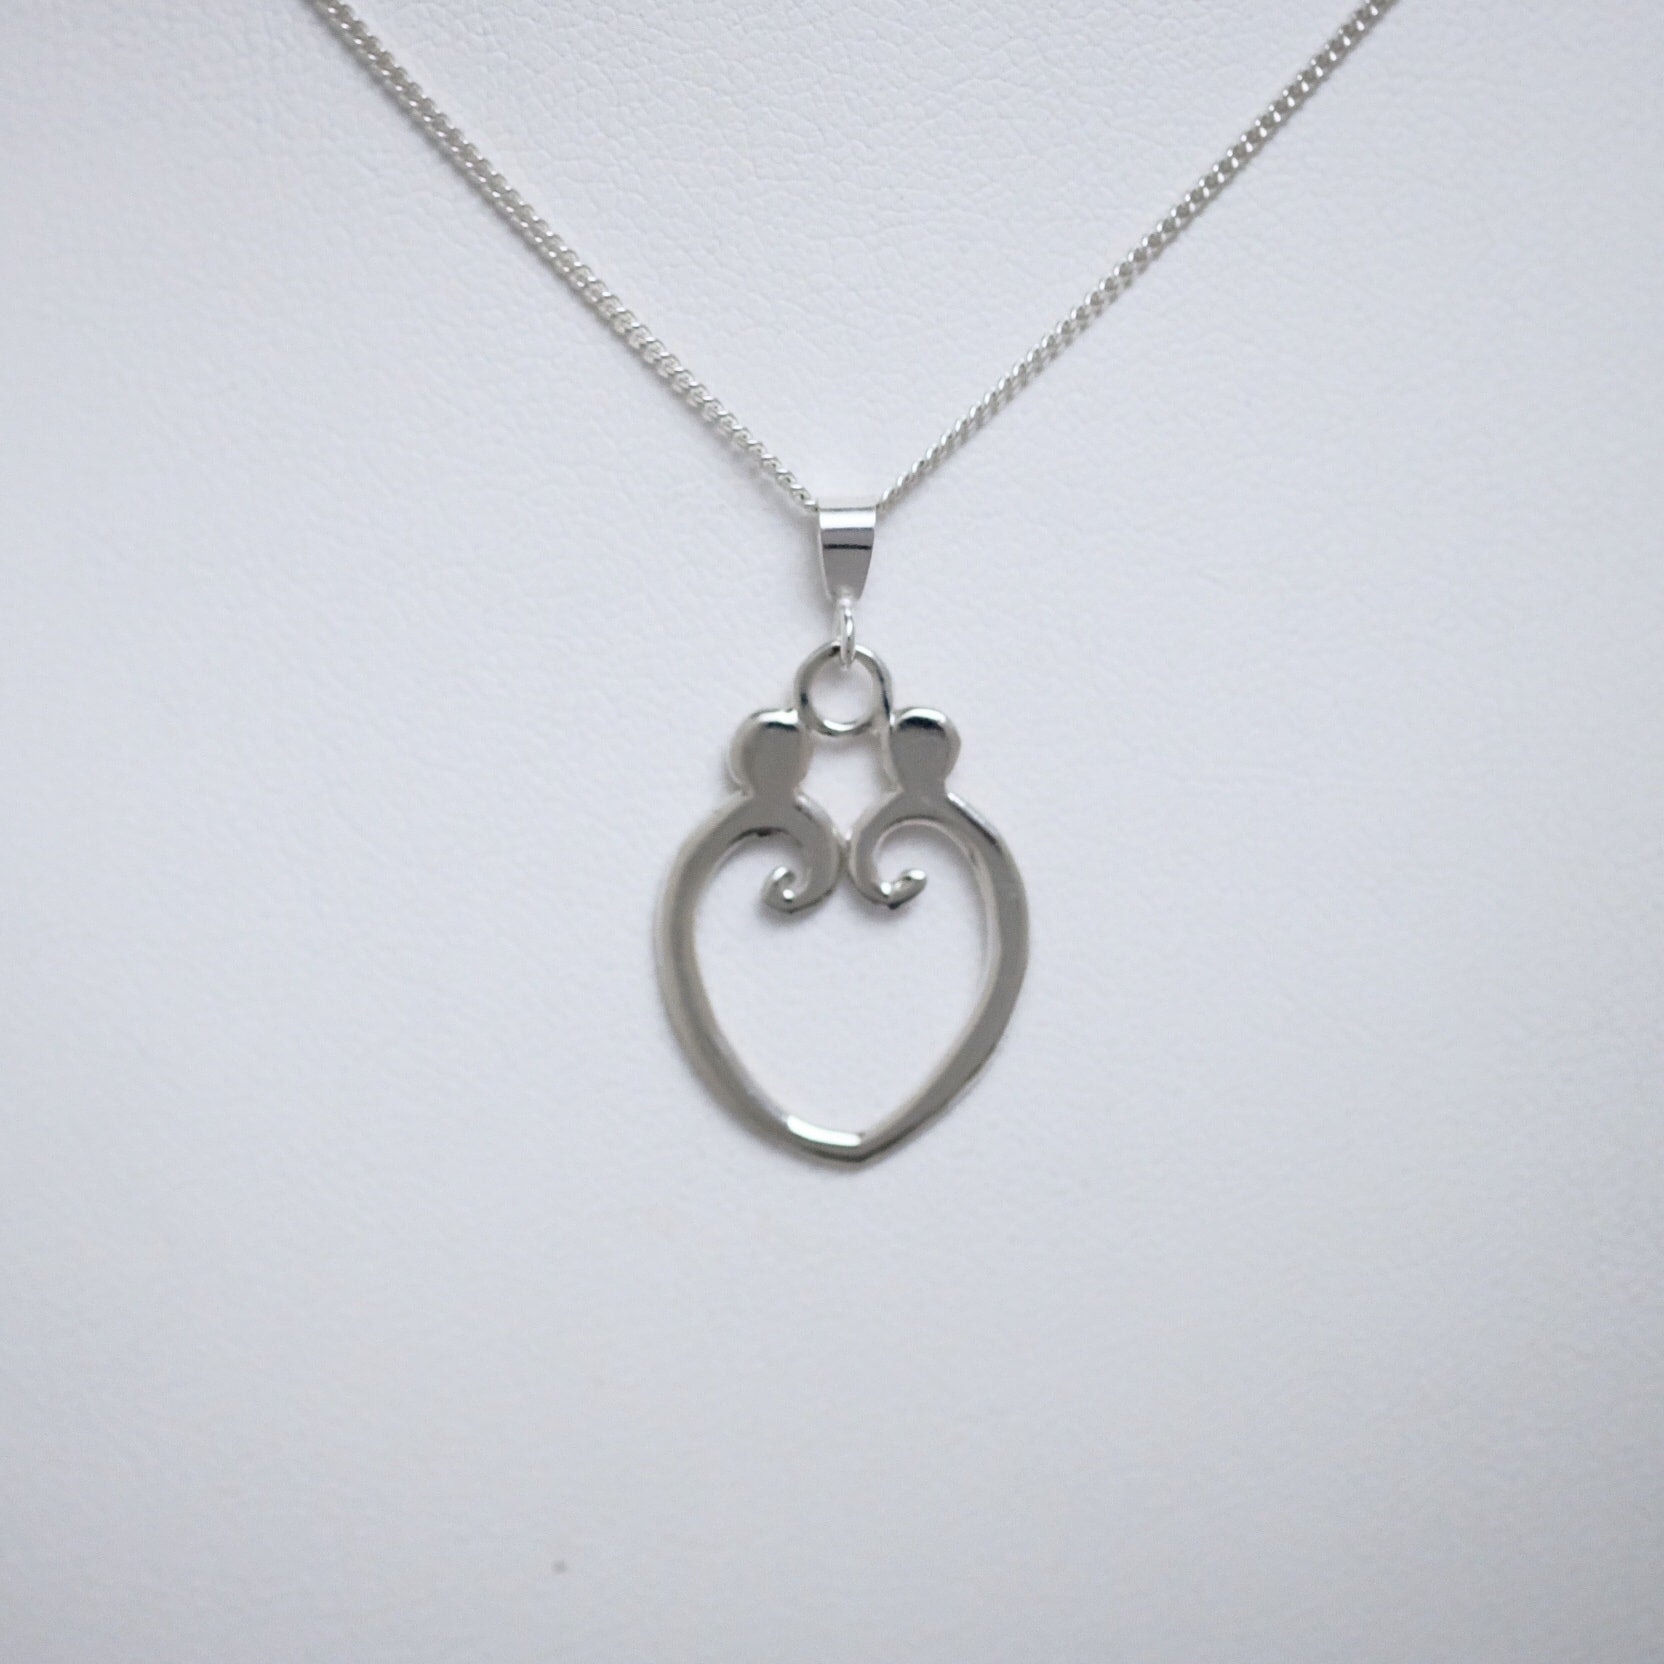 Loving Heart single size sterling silver pendant by Joseph Chiang